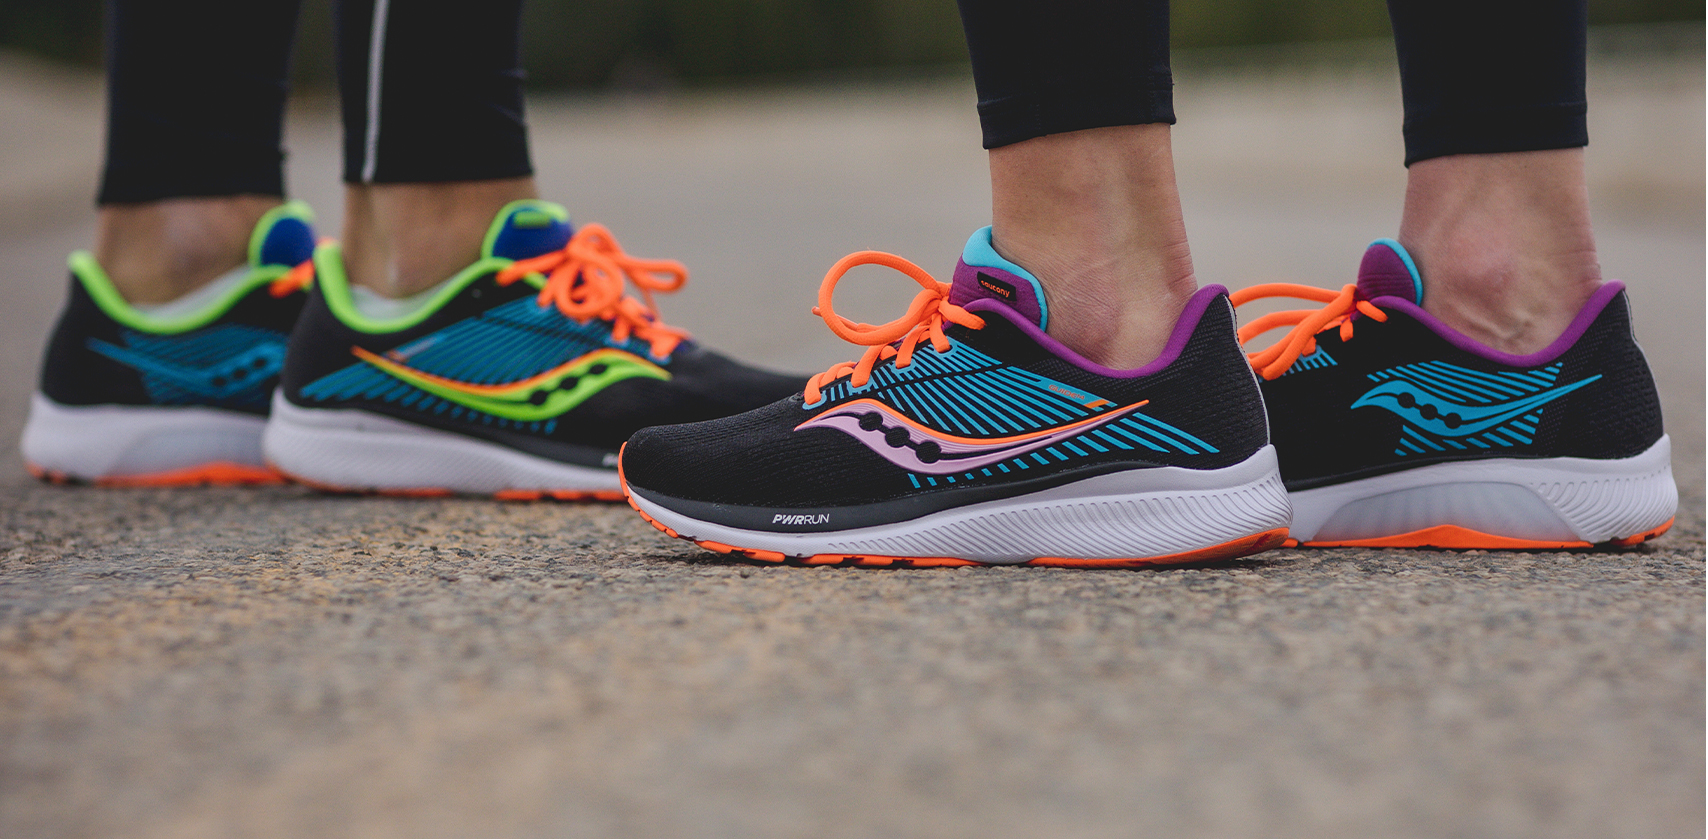 2 people standing with Saucony shoes and running pants.